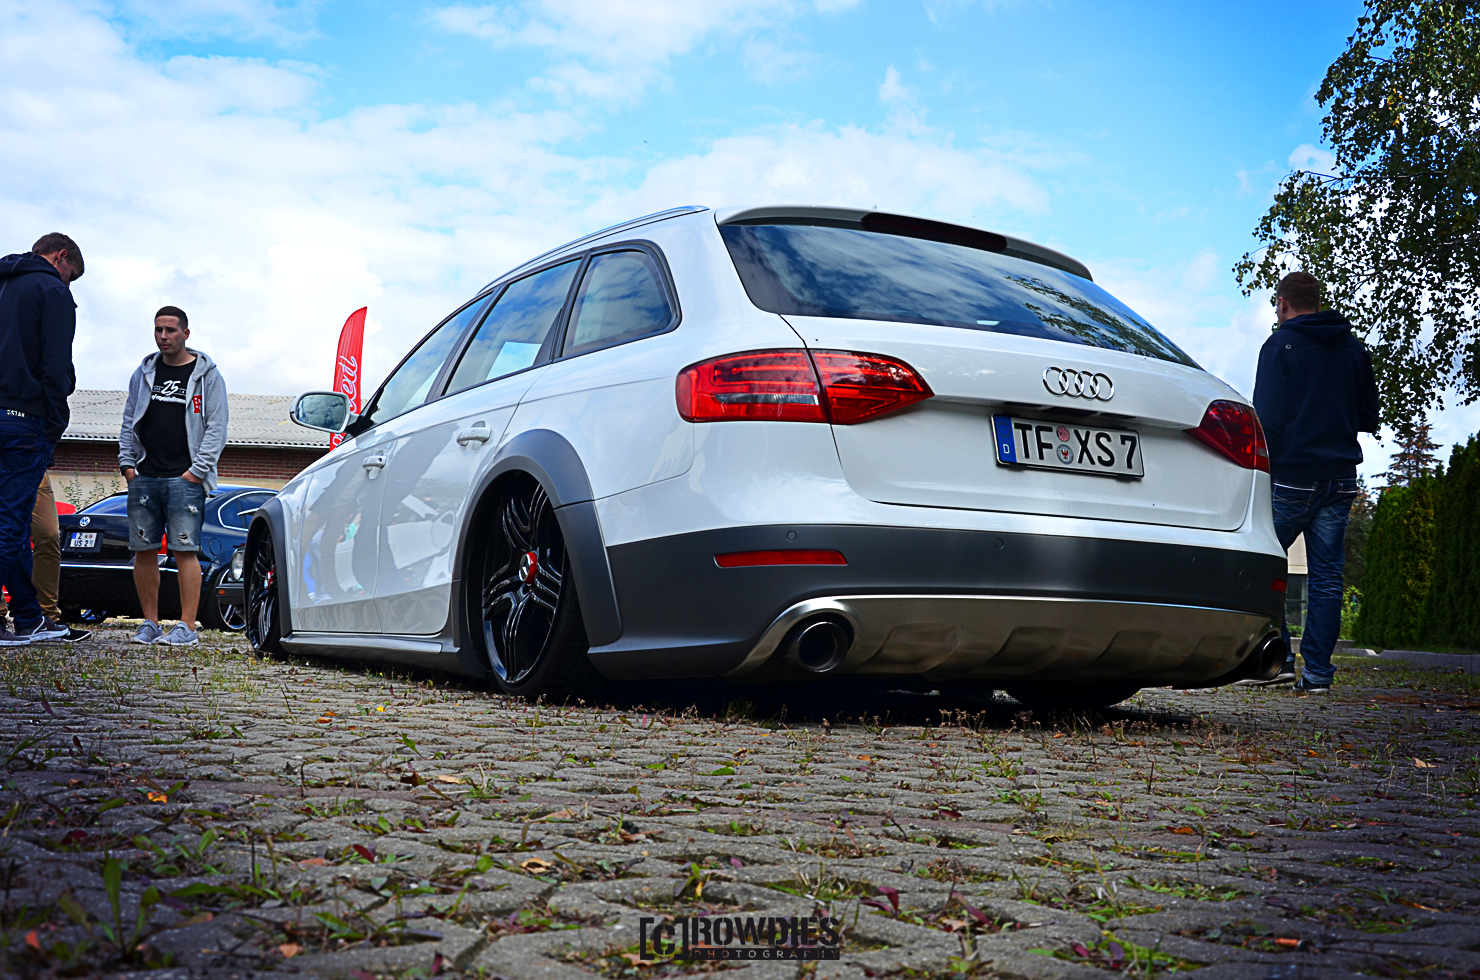 Team Eddy's Season End 2015 - Audi A6 Allroad Weiß